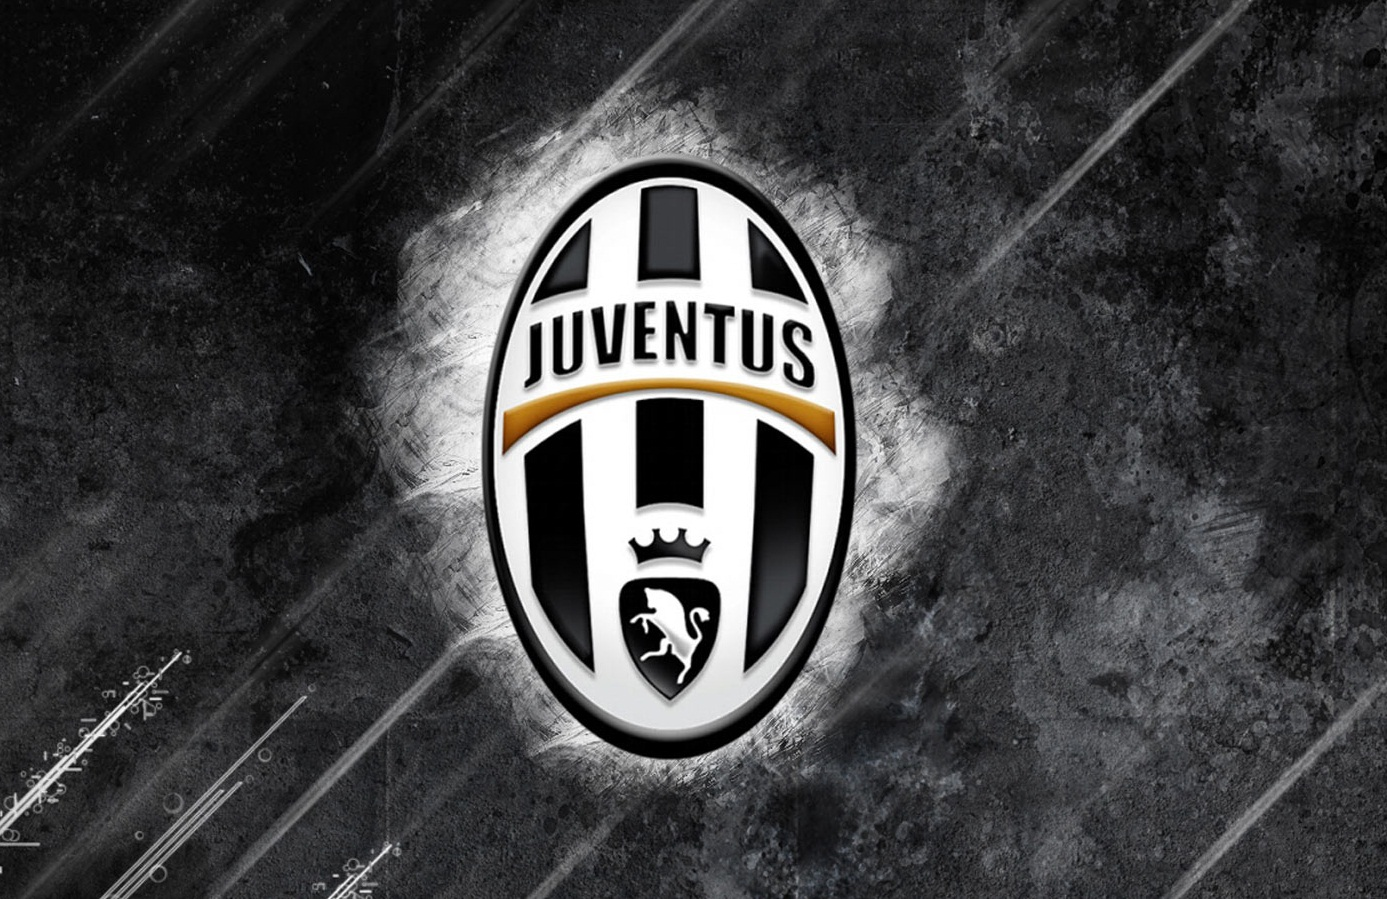 juventus wallpapers football